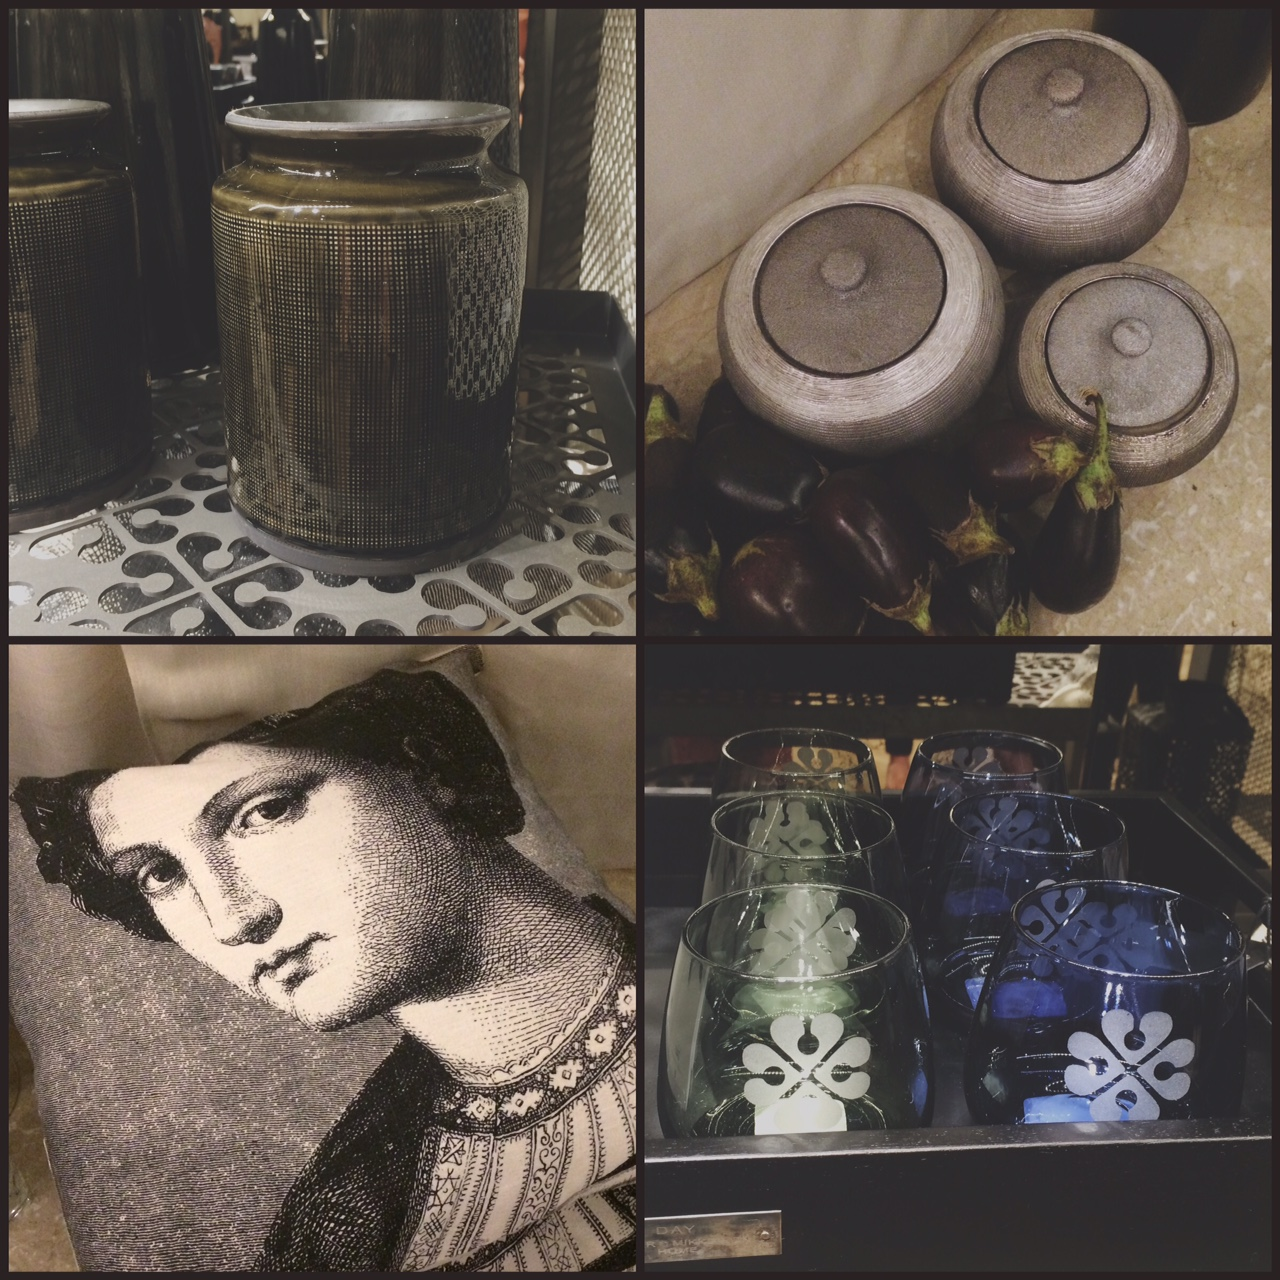 6af20f2dd0f1 Some of the decor items available at the store – I have my eye on the green  ceramic container